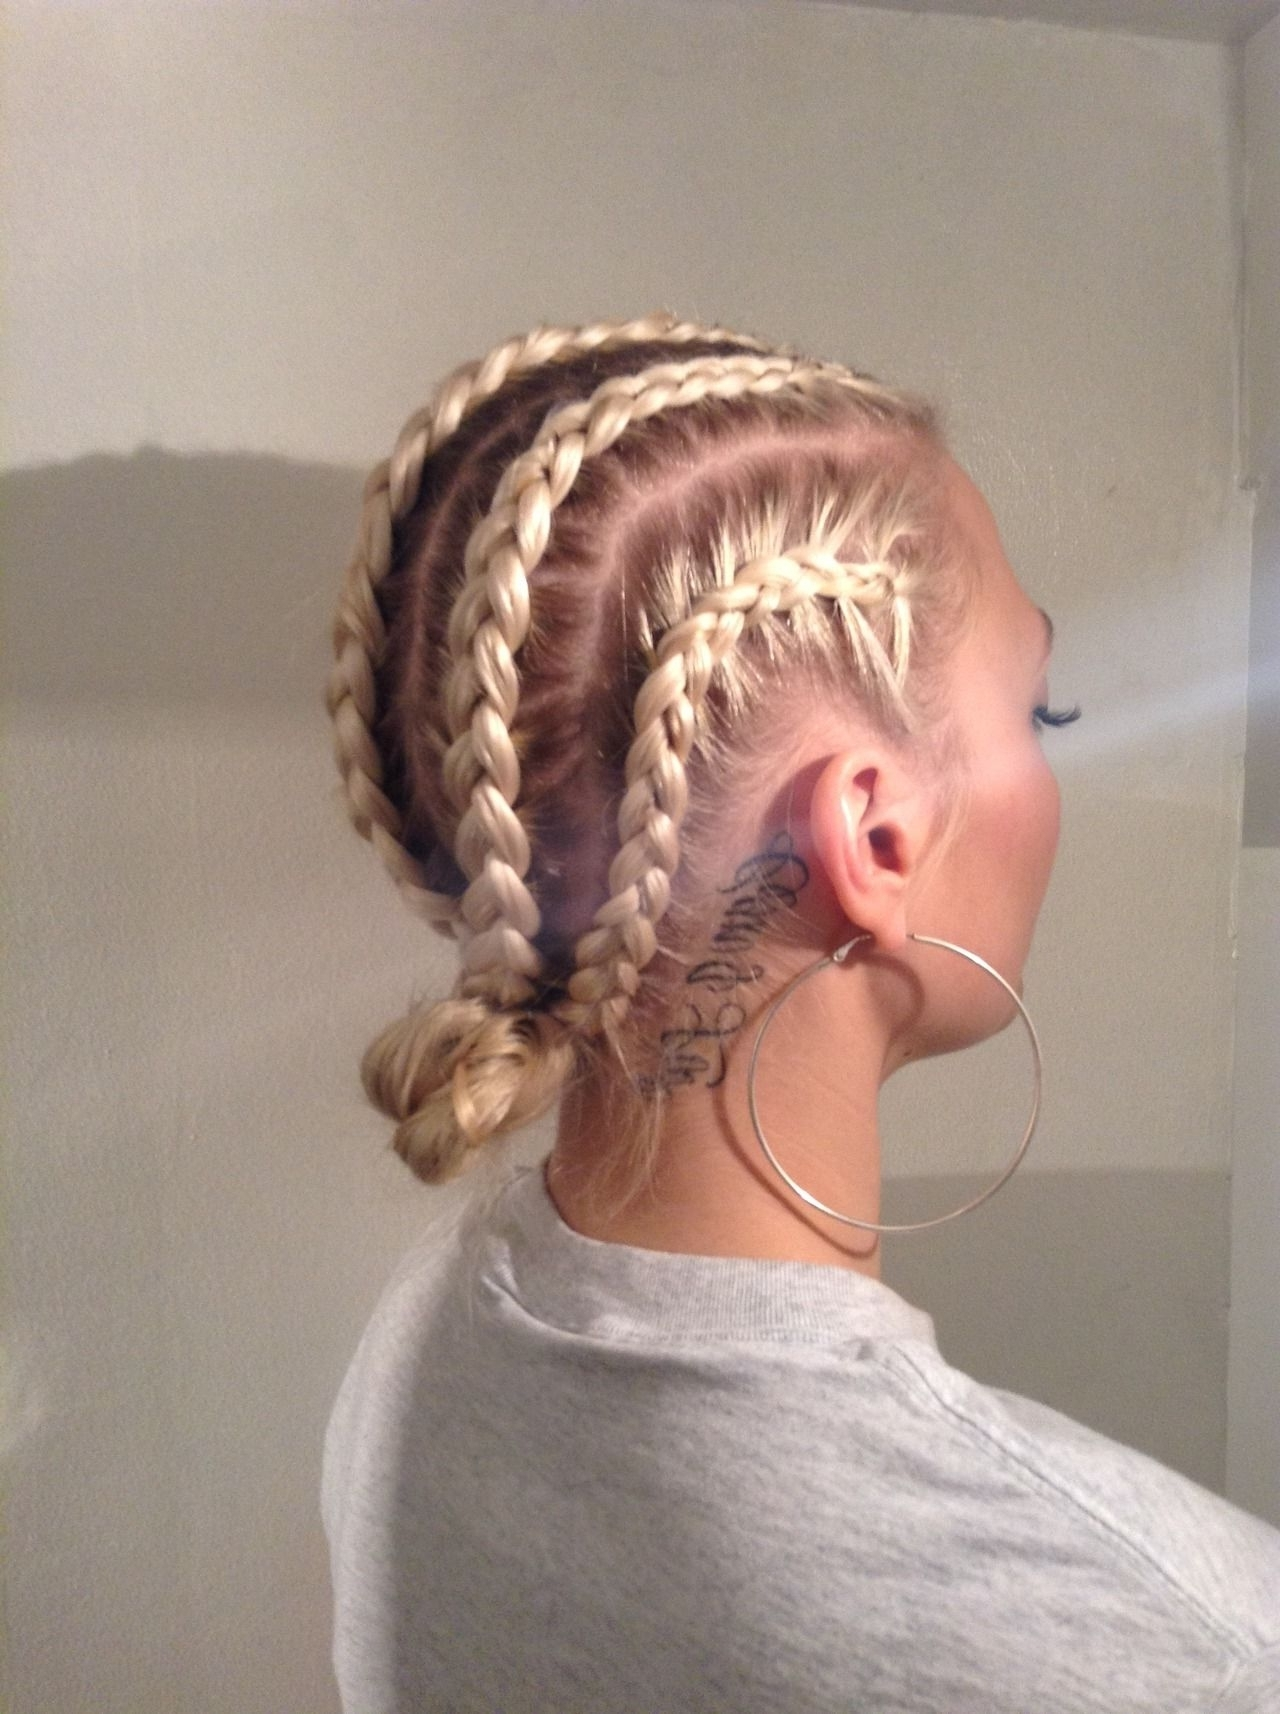 Recent Cornrows Hairstyles For White Girl Within If They're White And They Do Cornrows On Their Hair (View 5 of 15)